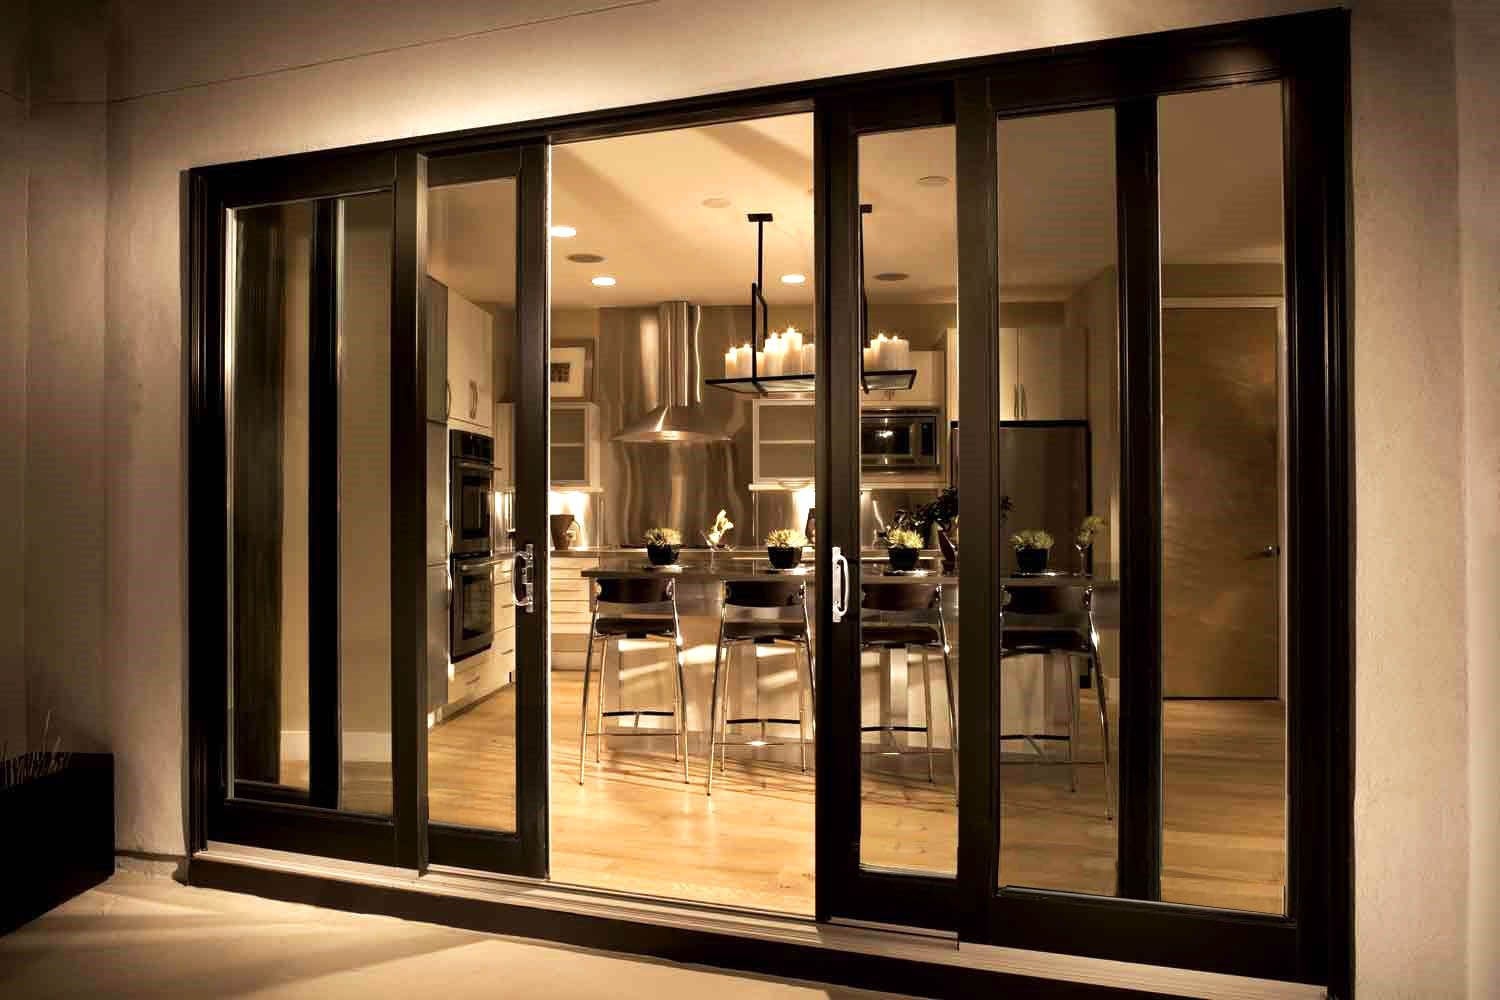 Wood french swinging patio doors low e glass siteline ex windows wood french swinging patio doors low e glass siteline ex windows transoms colonial grilles sun room pinterest patio doors colonial and patios rubansaba